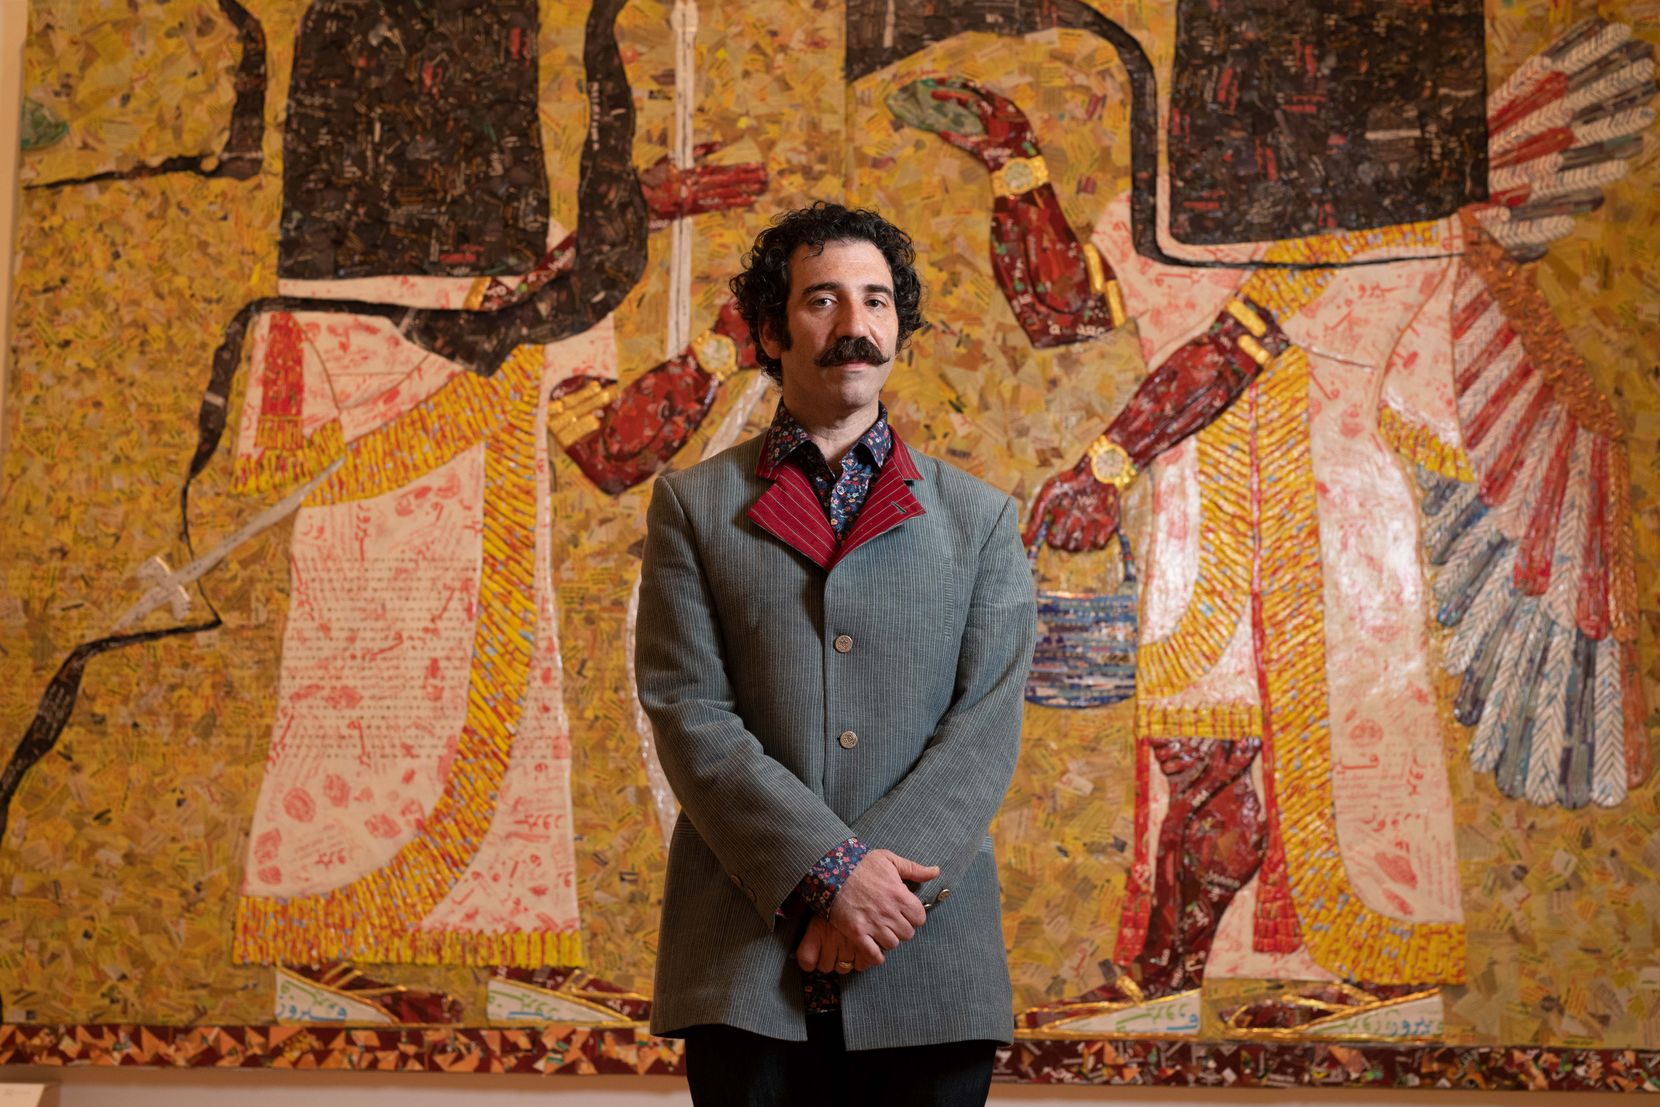 Michael Rakowitz, winner of the 2020 Nasher Prize for Sculpture